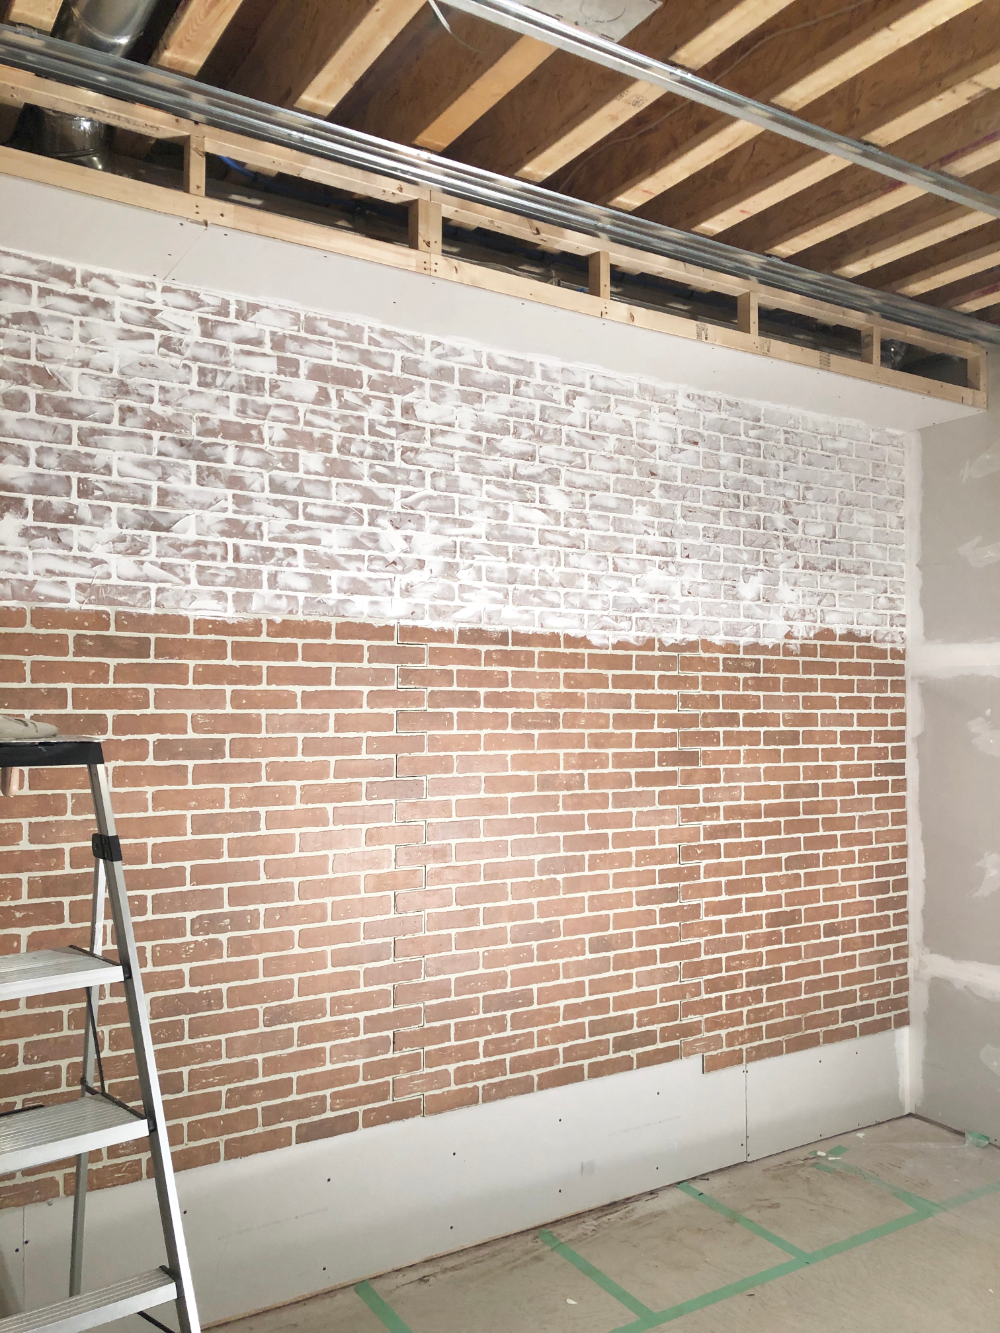 How To Diy A Faux Brick Wall With A German Schmear In 2020 Faux Brick Walls Brick Wall Bedroom Brick Wall Paneling